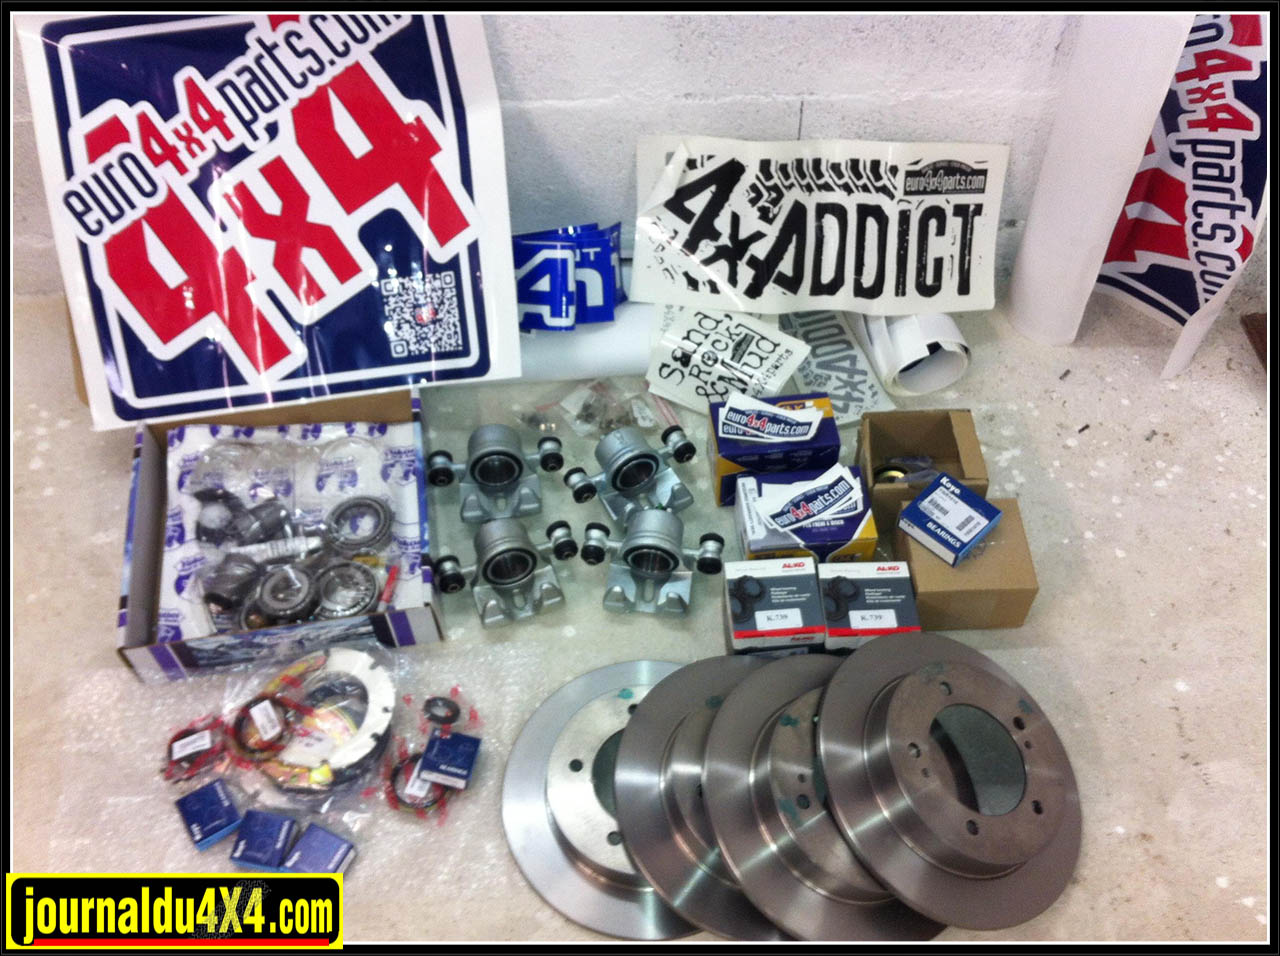 fournitures_pieces_euro4x4parts.jpg